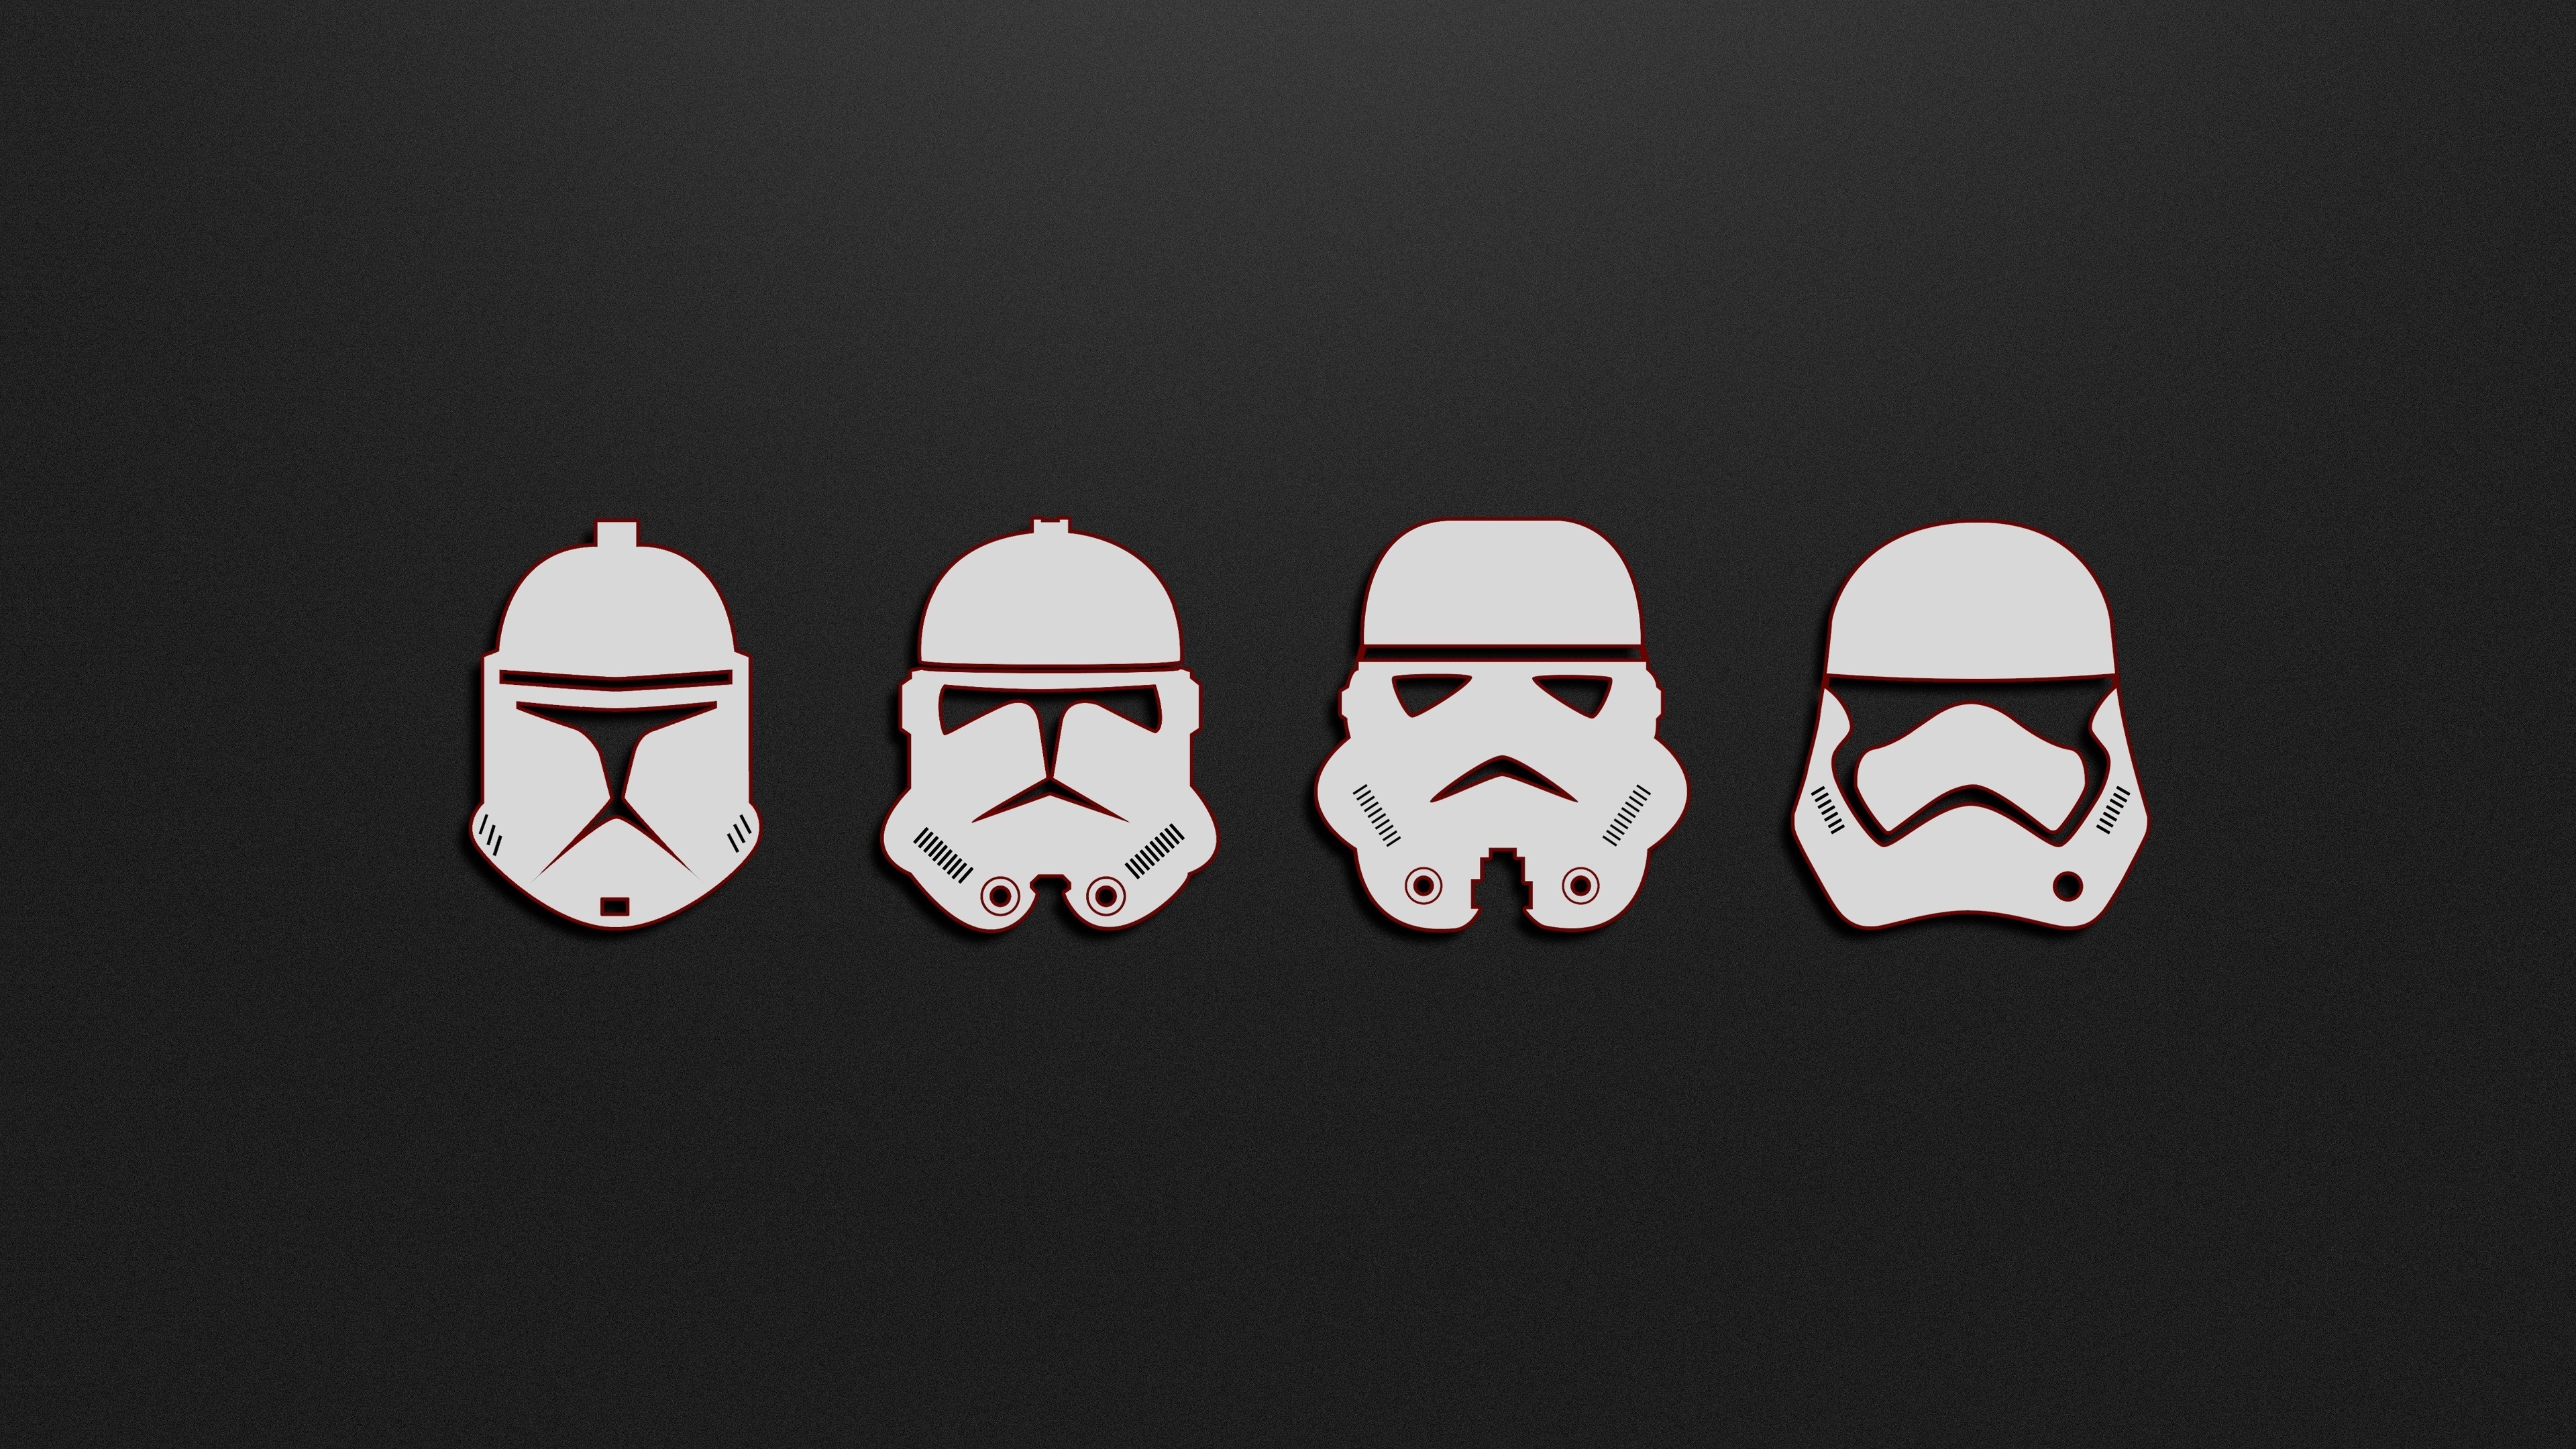 Minimalist Star Wars Wallpaper Posted By Samantha Walker